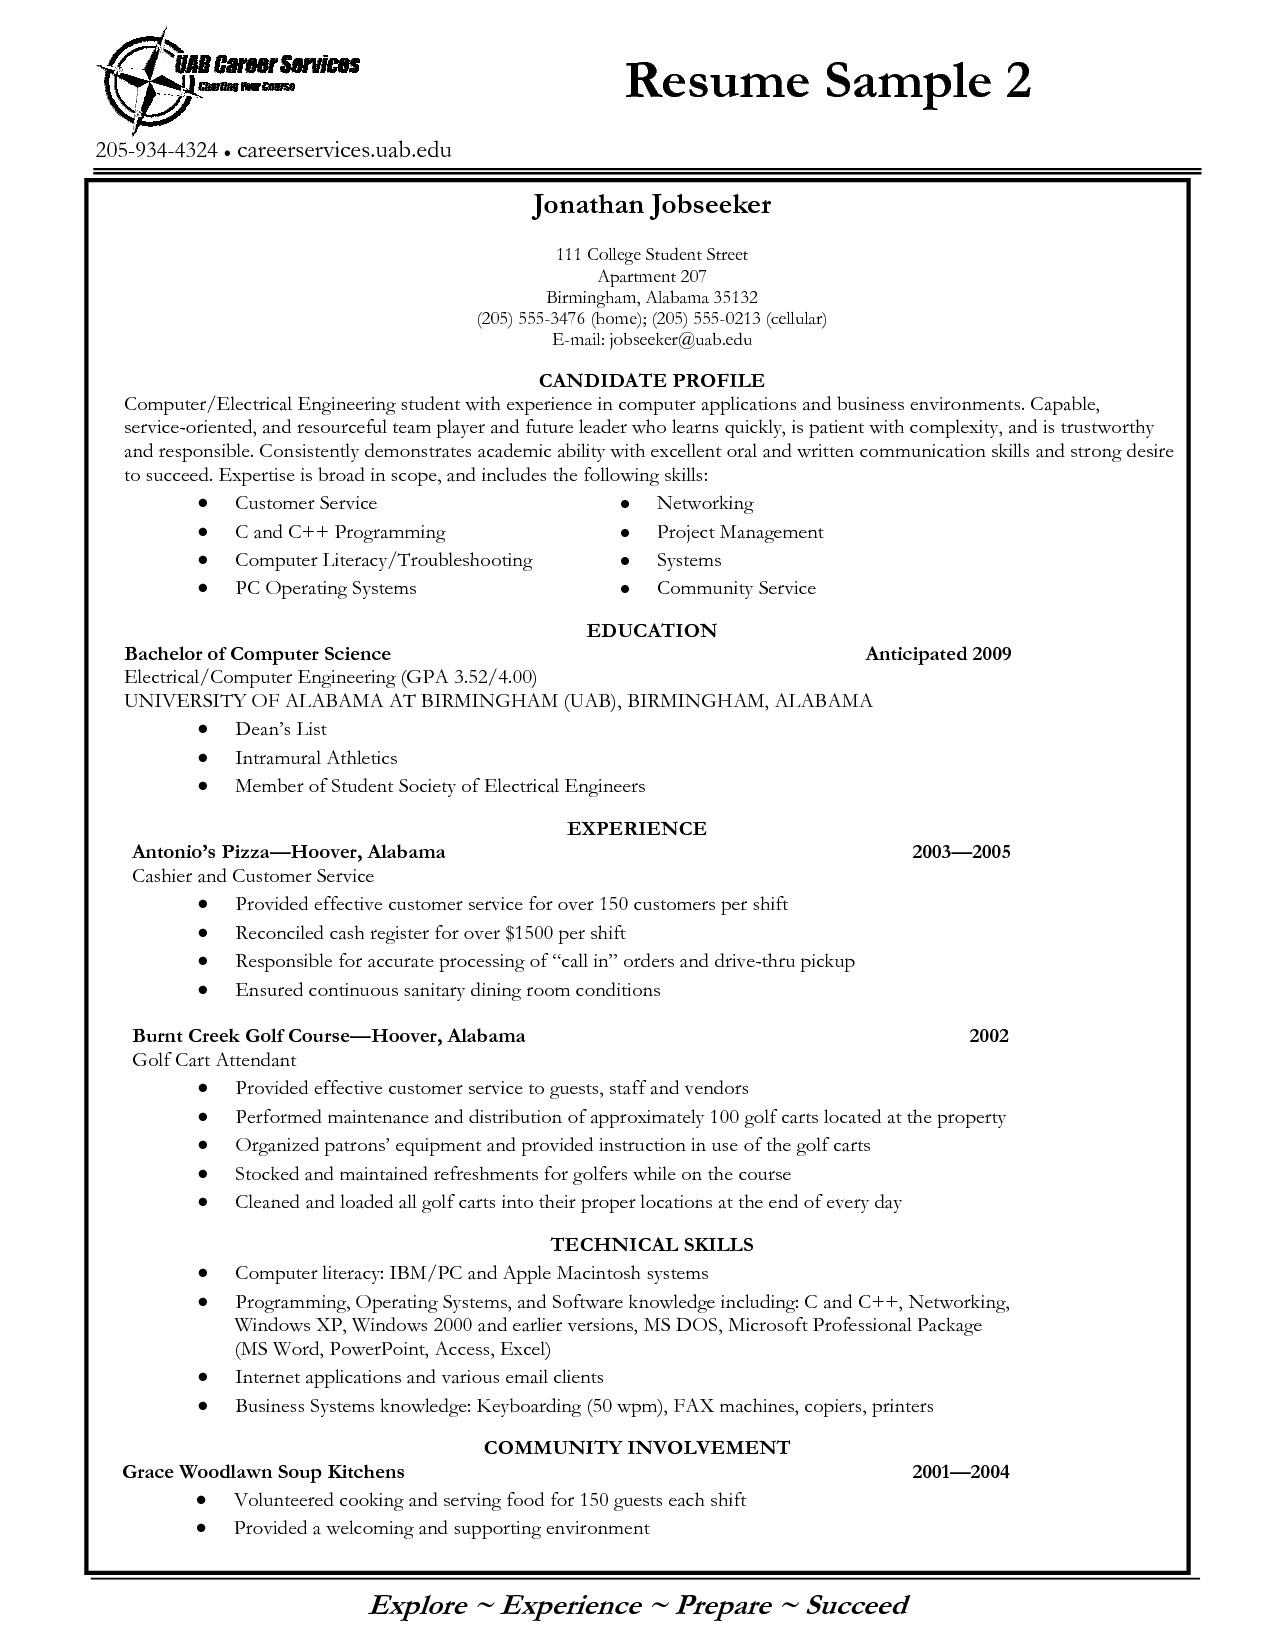 Resume Templates For College Students Tags College Graduate Resume No Experience College Graduate Resume